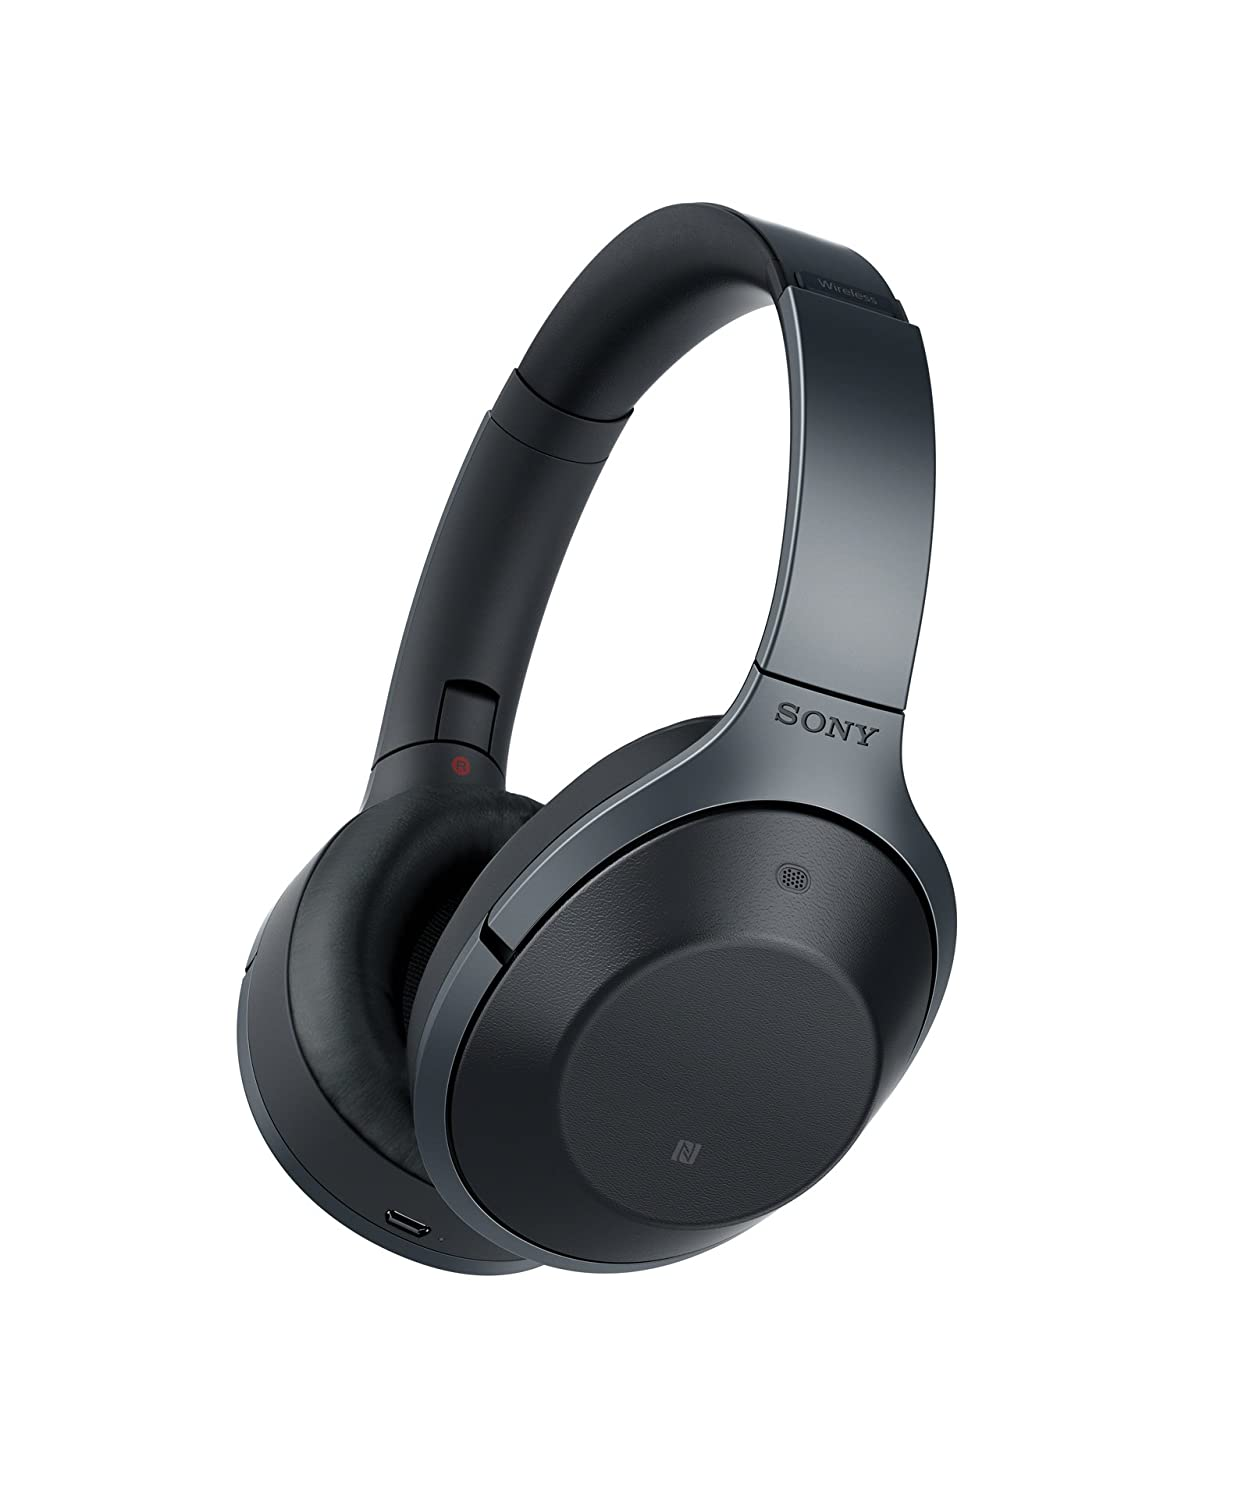 0a5bc193208 Sony MDR-1000X Wireless Bluetooth Noise Cancelling: Amazon.co.uk:  Electronics